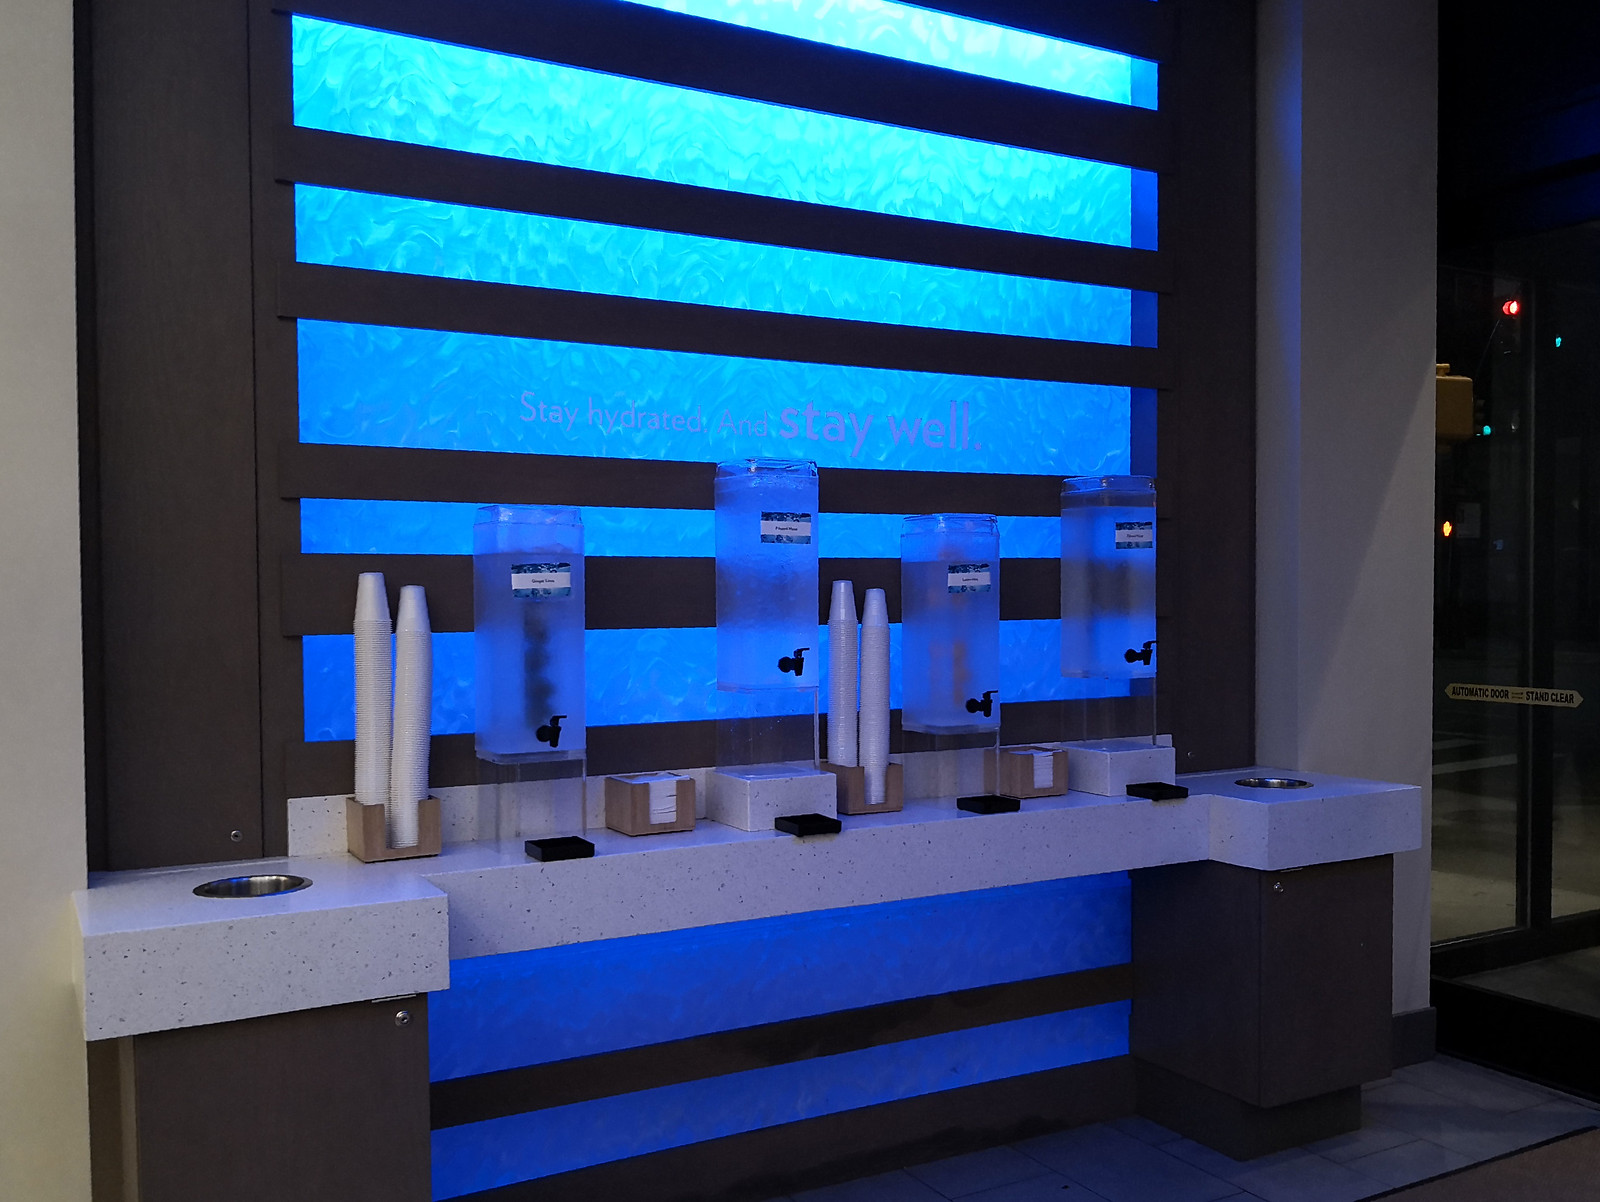 Water dispensers by the lobby